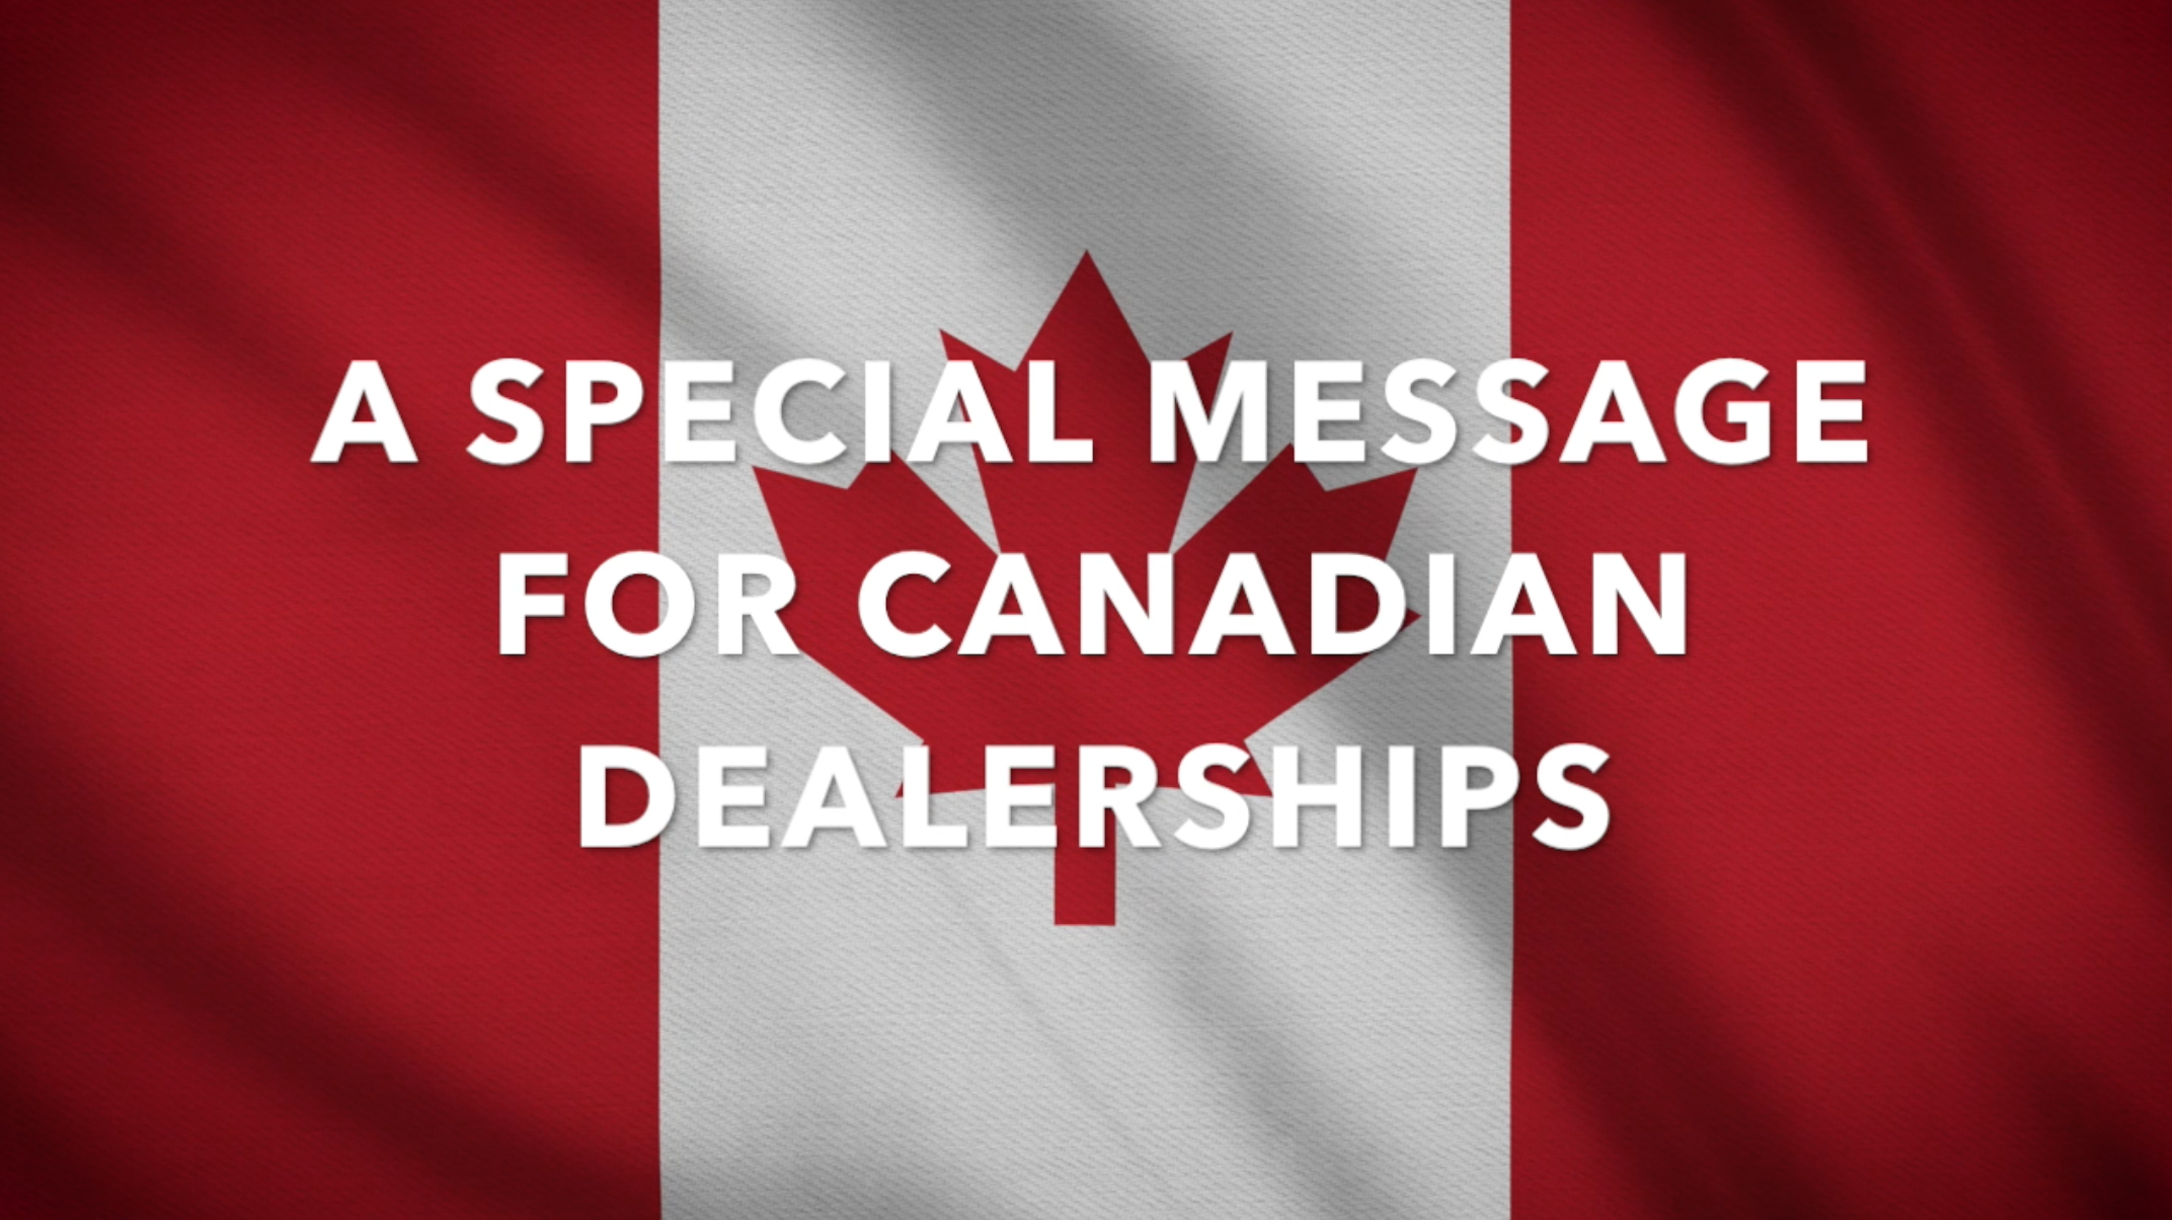 A special message for Canadian Dealerships